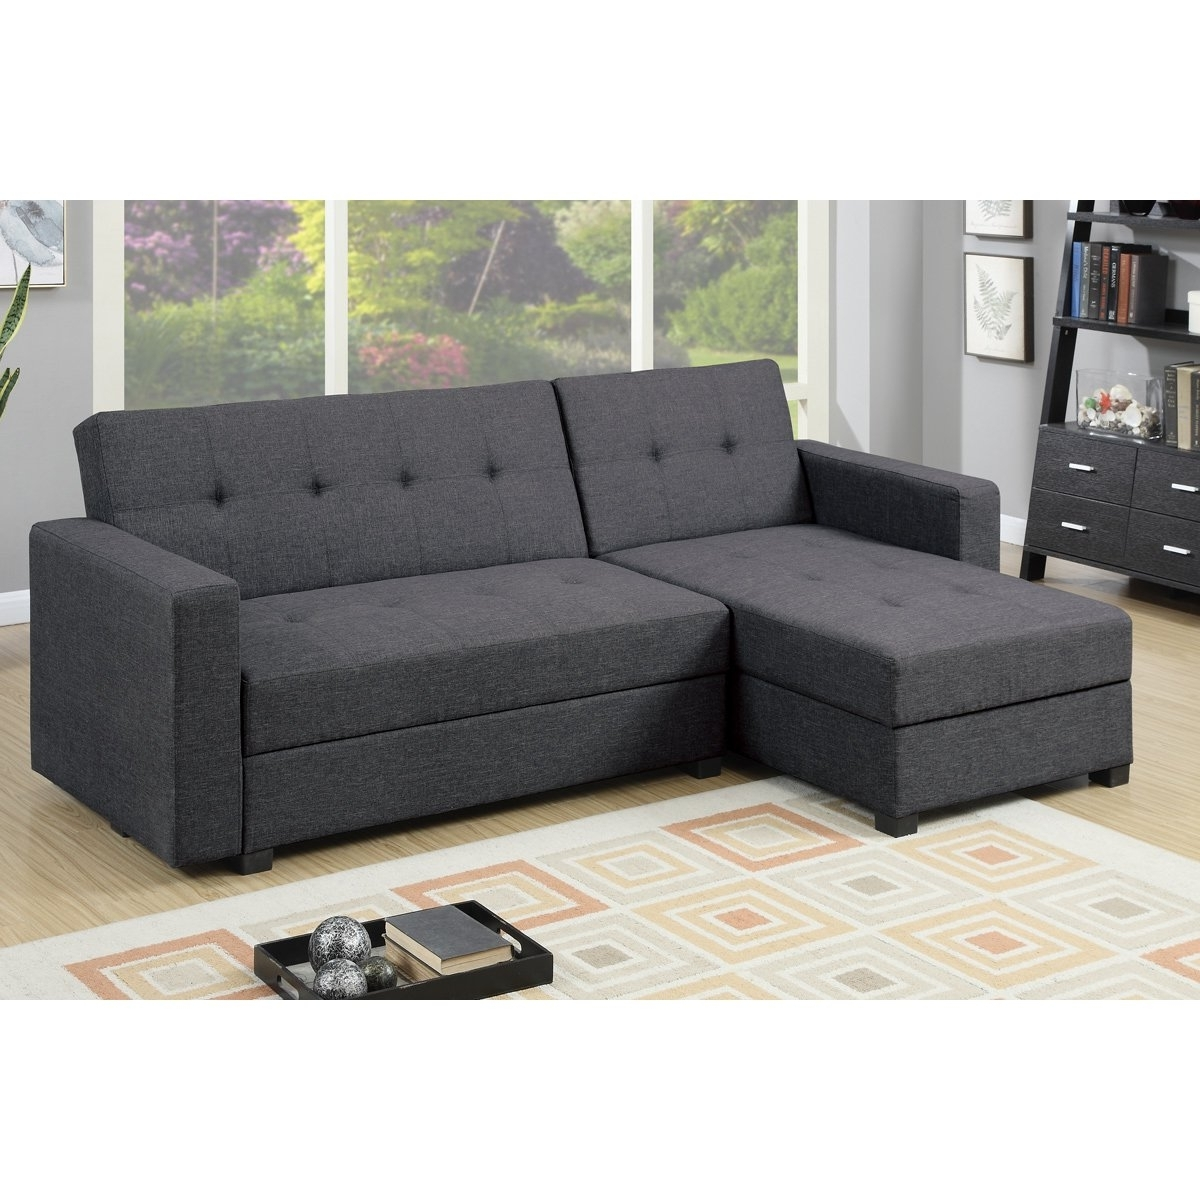 Favorite Furniture: Reversible Chaise Sectional For Comfortable Living Room Inside Sectional Chaises (View 6 of 15)